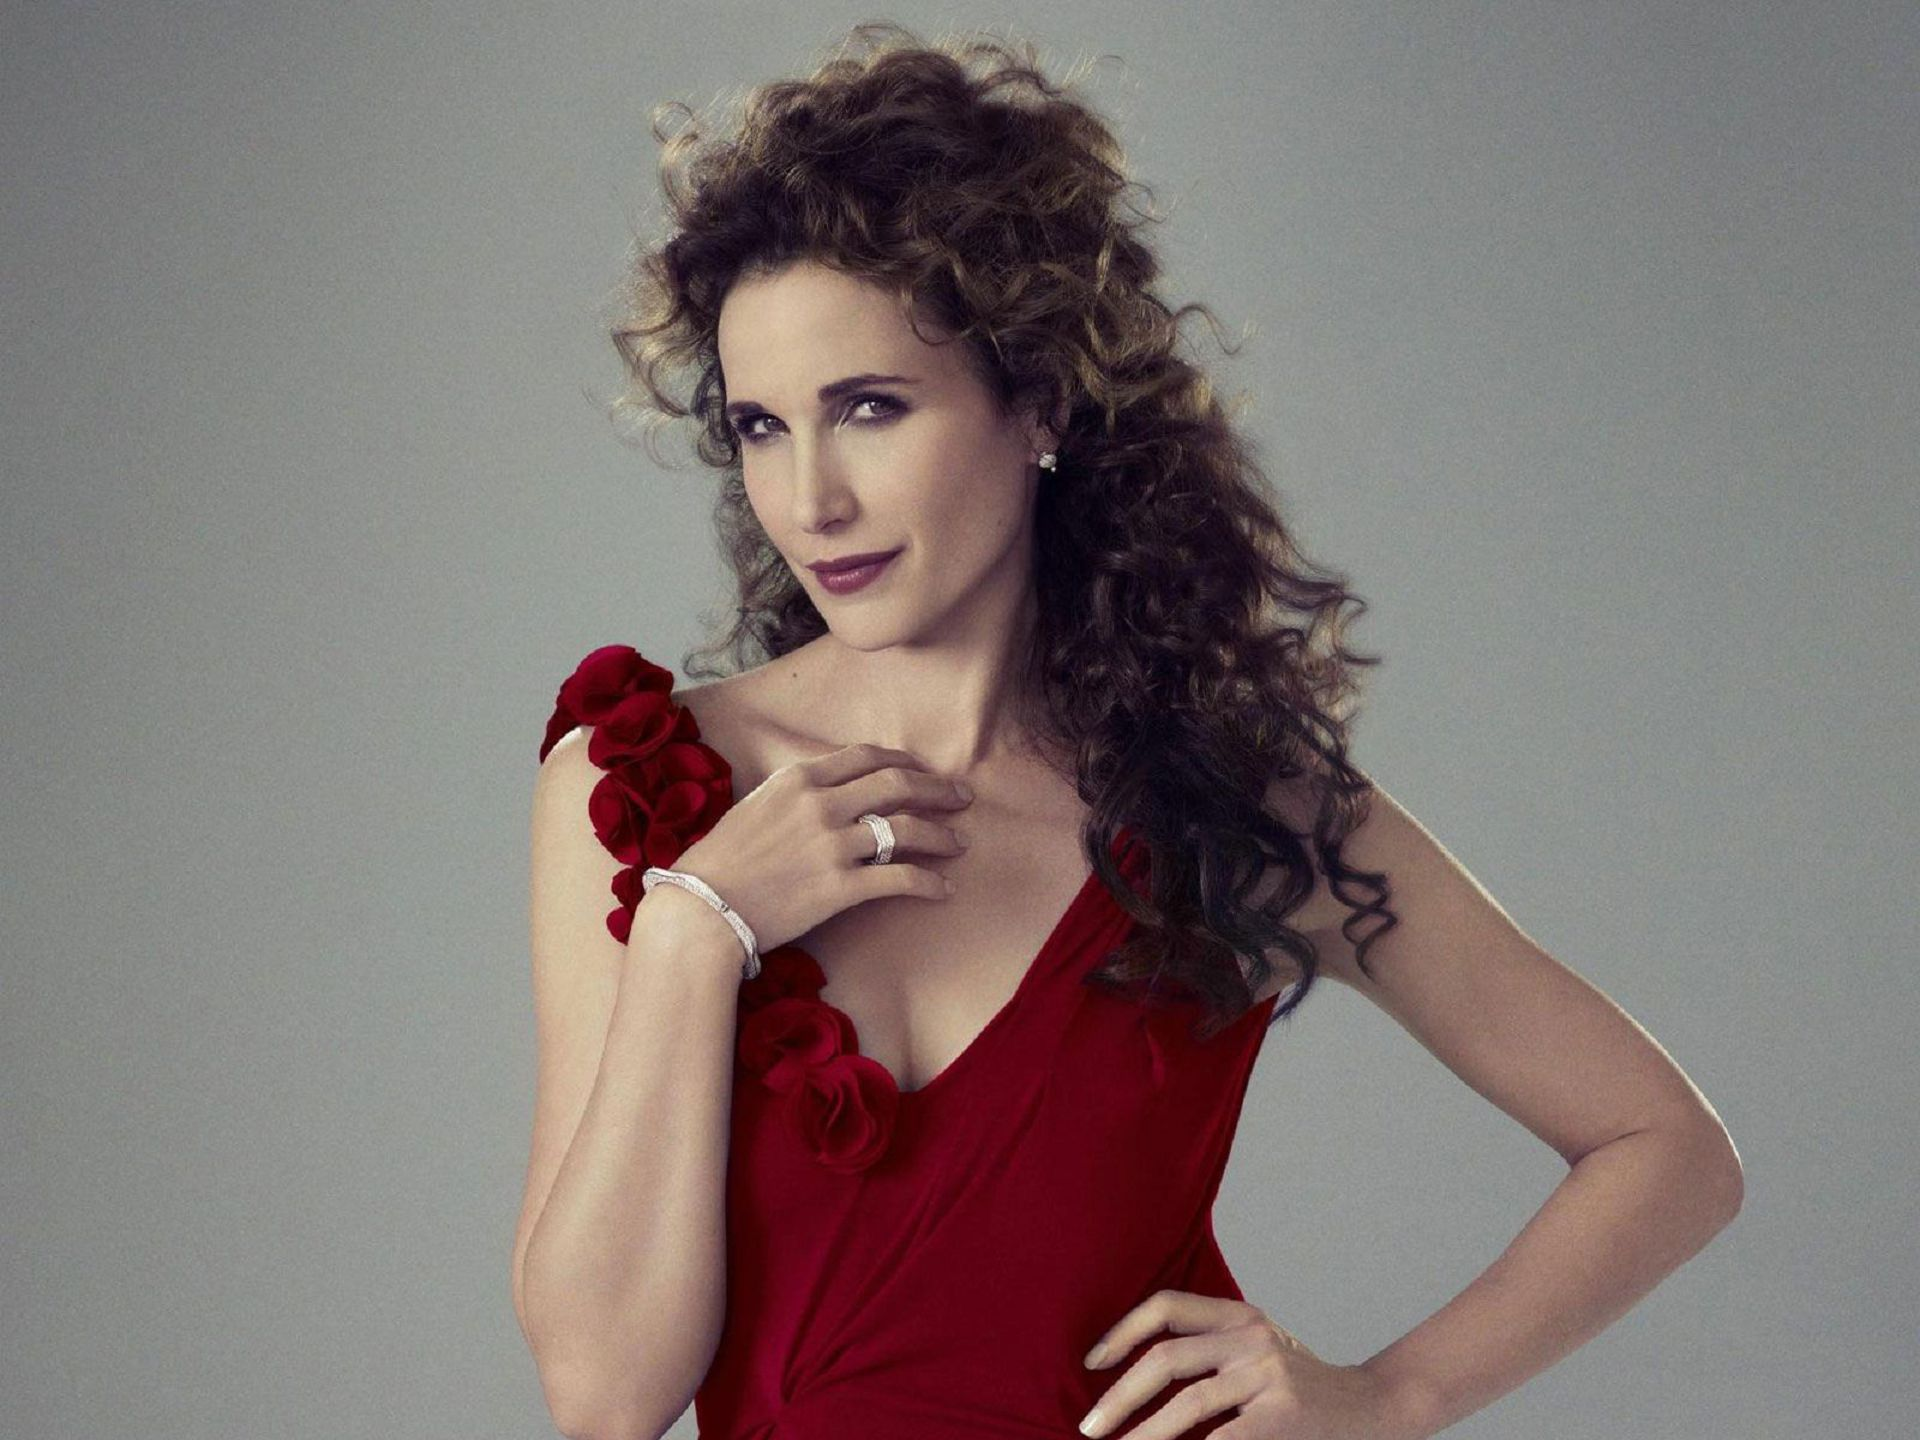 Andie Macdowell Wallpaper Pack